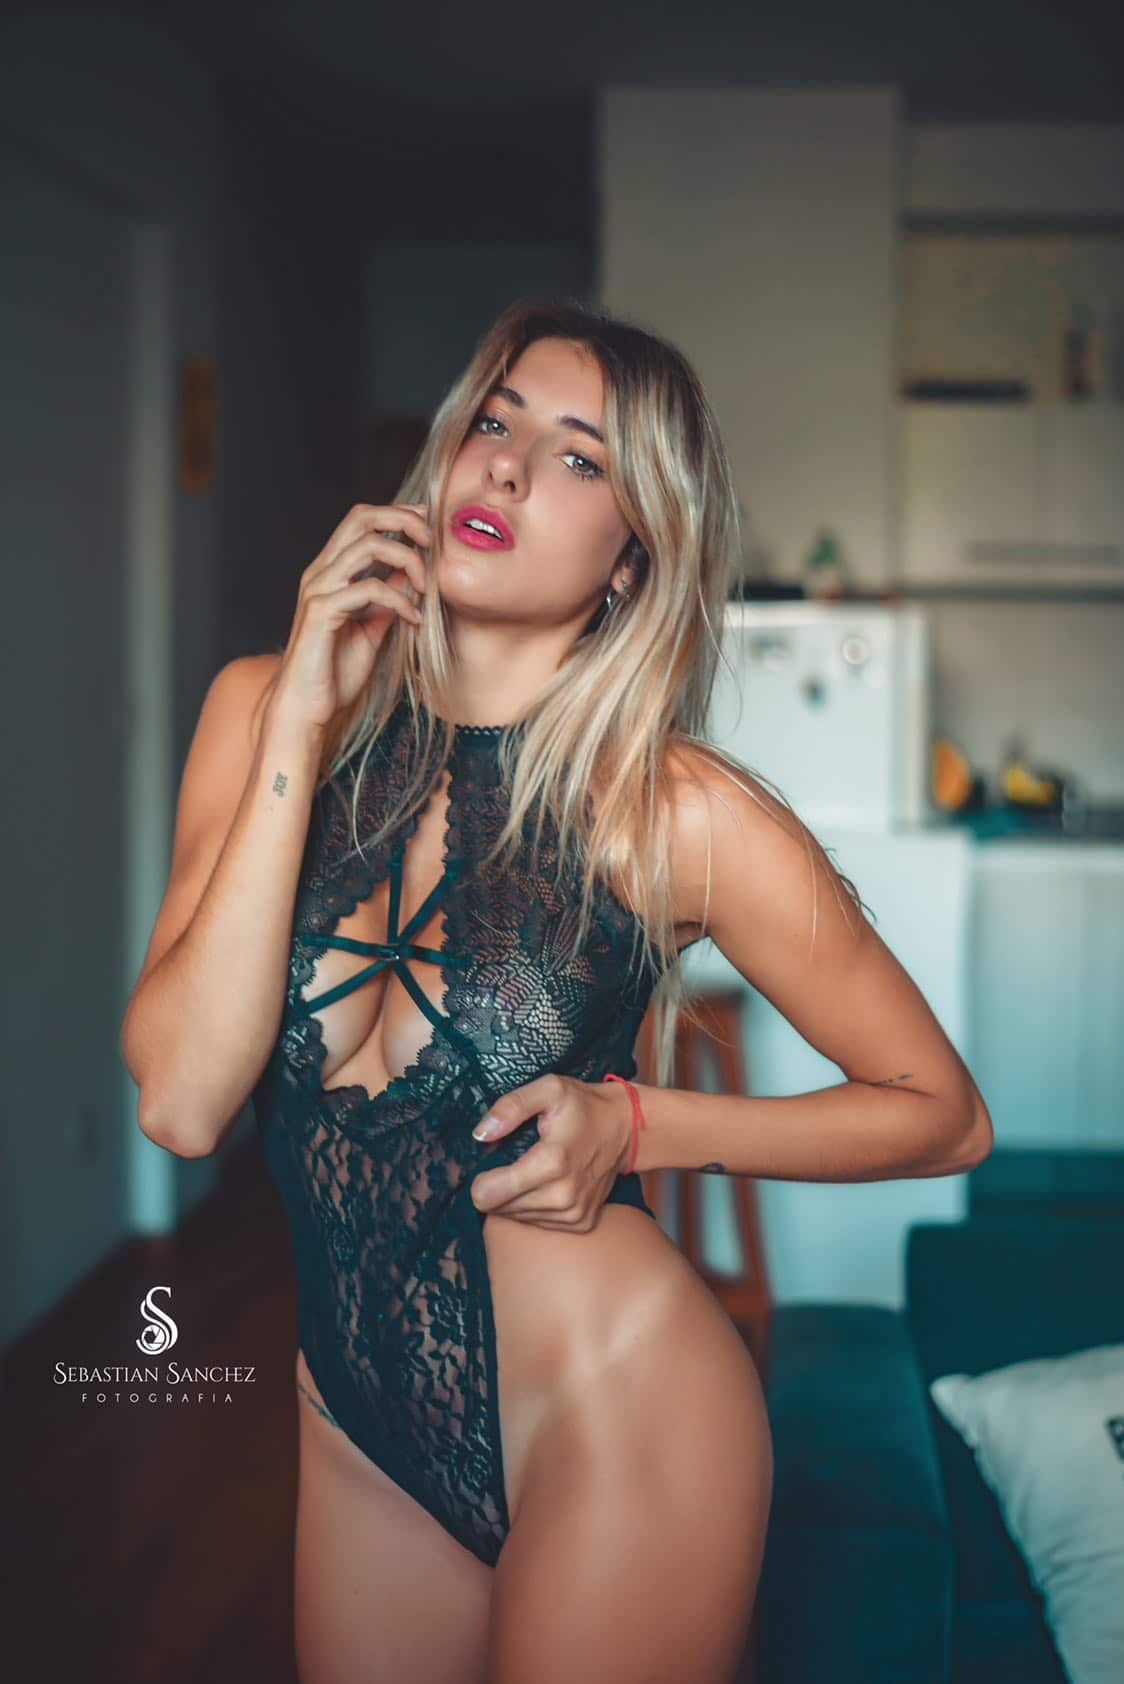 Beautiful blonde Argentine model Camila Sol Botti wearing transparent black lace lingerie for a boudoir photoshoot showing cleavage with her mouth open